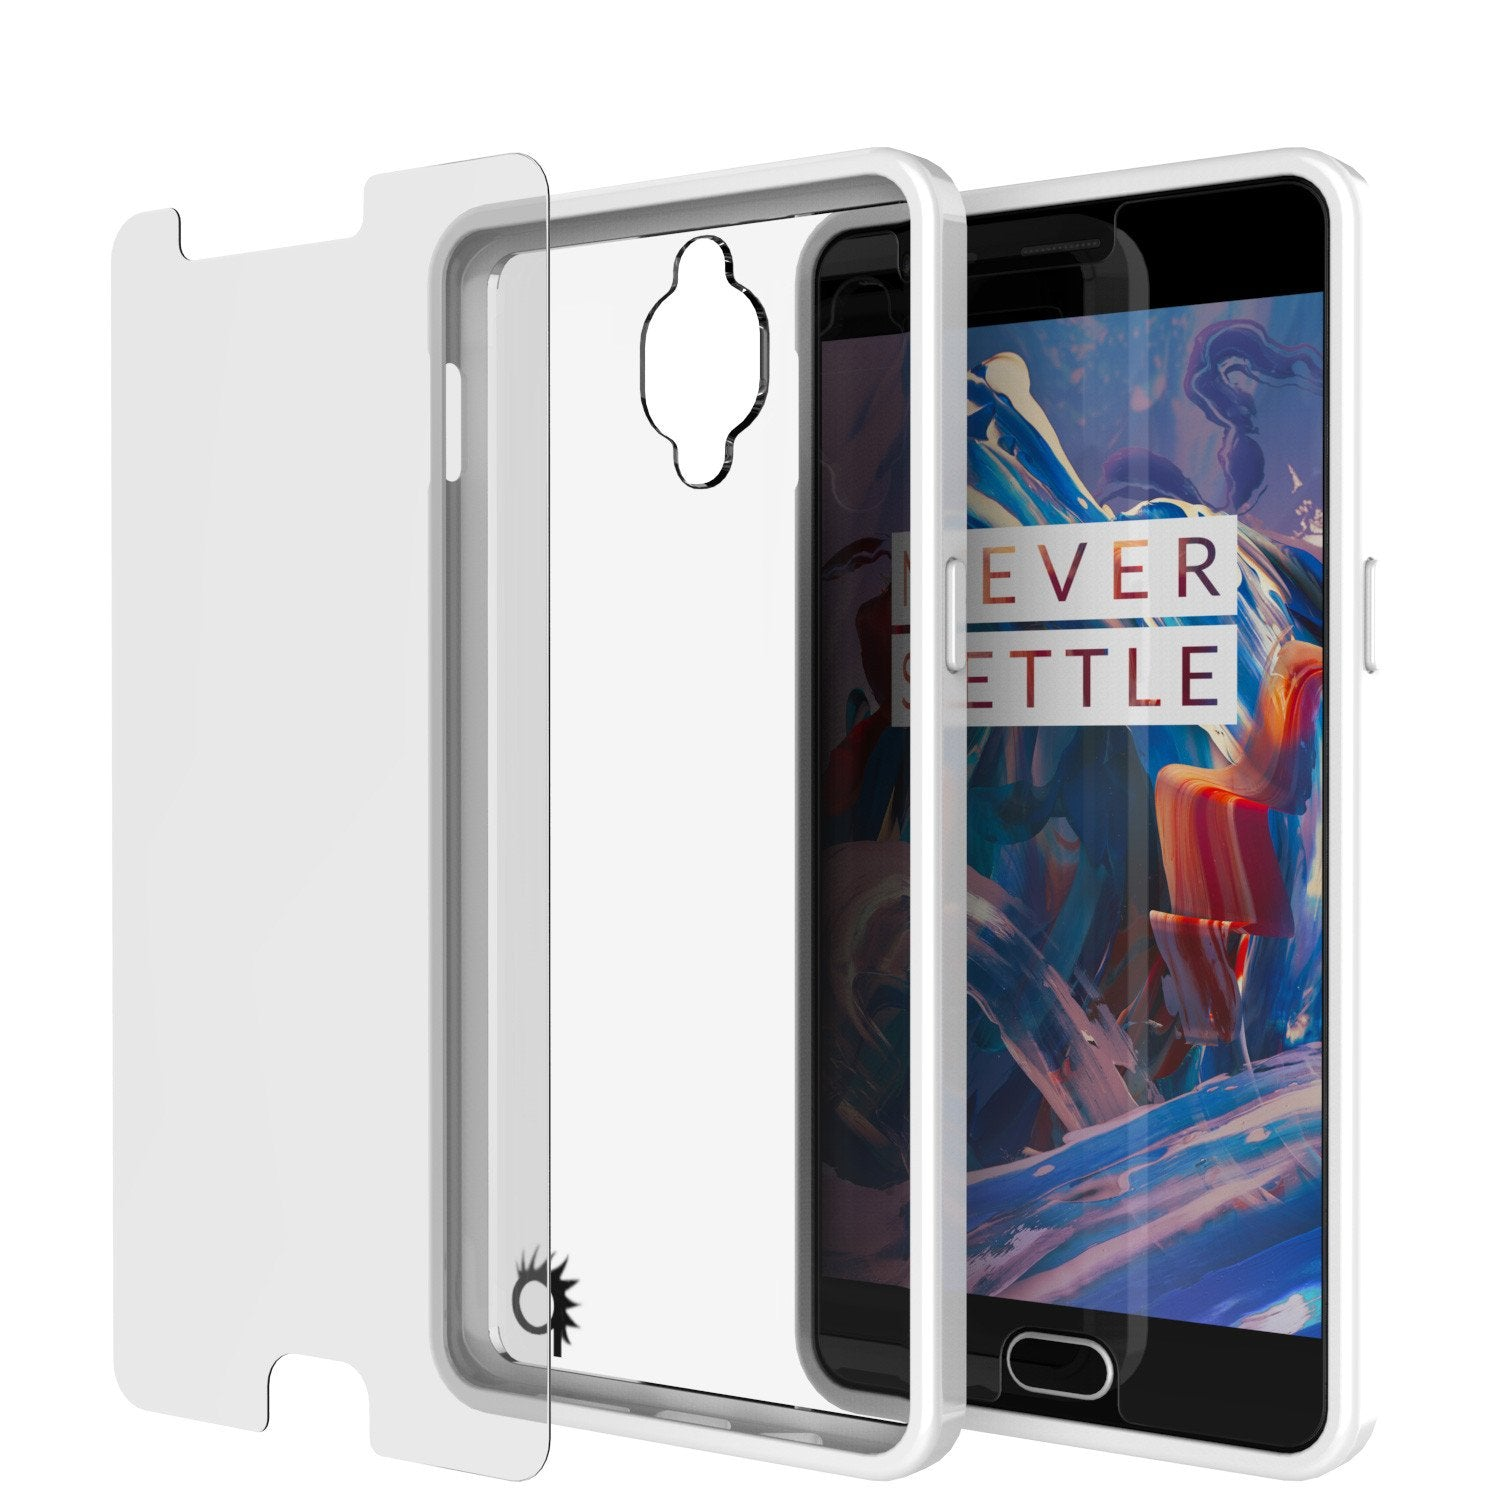 OnePlus 3 Case Punkcase® LUCID 2.0 White Series w/ SHIELD GLASS Lifetime Warranty Exchange - PunkCase NZ